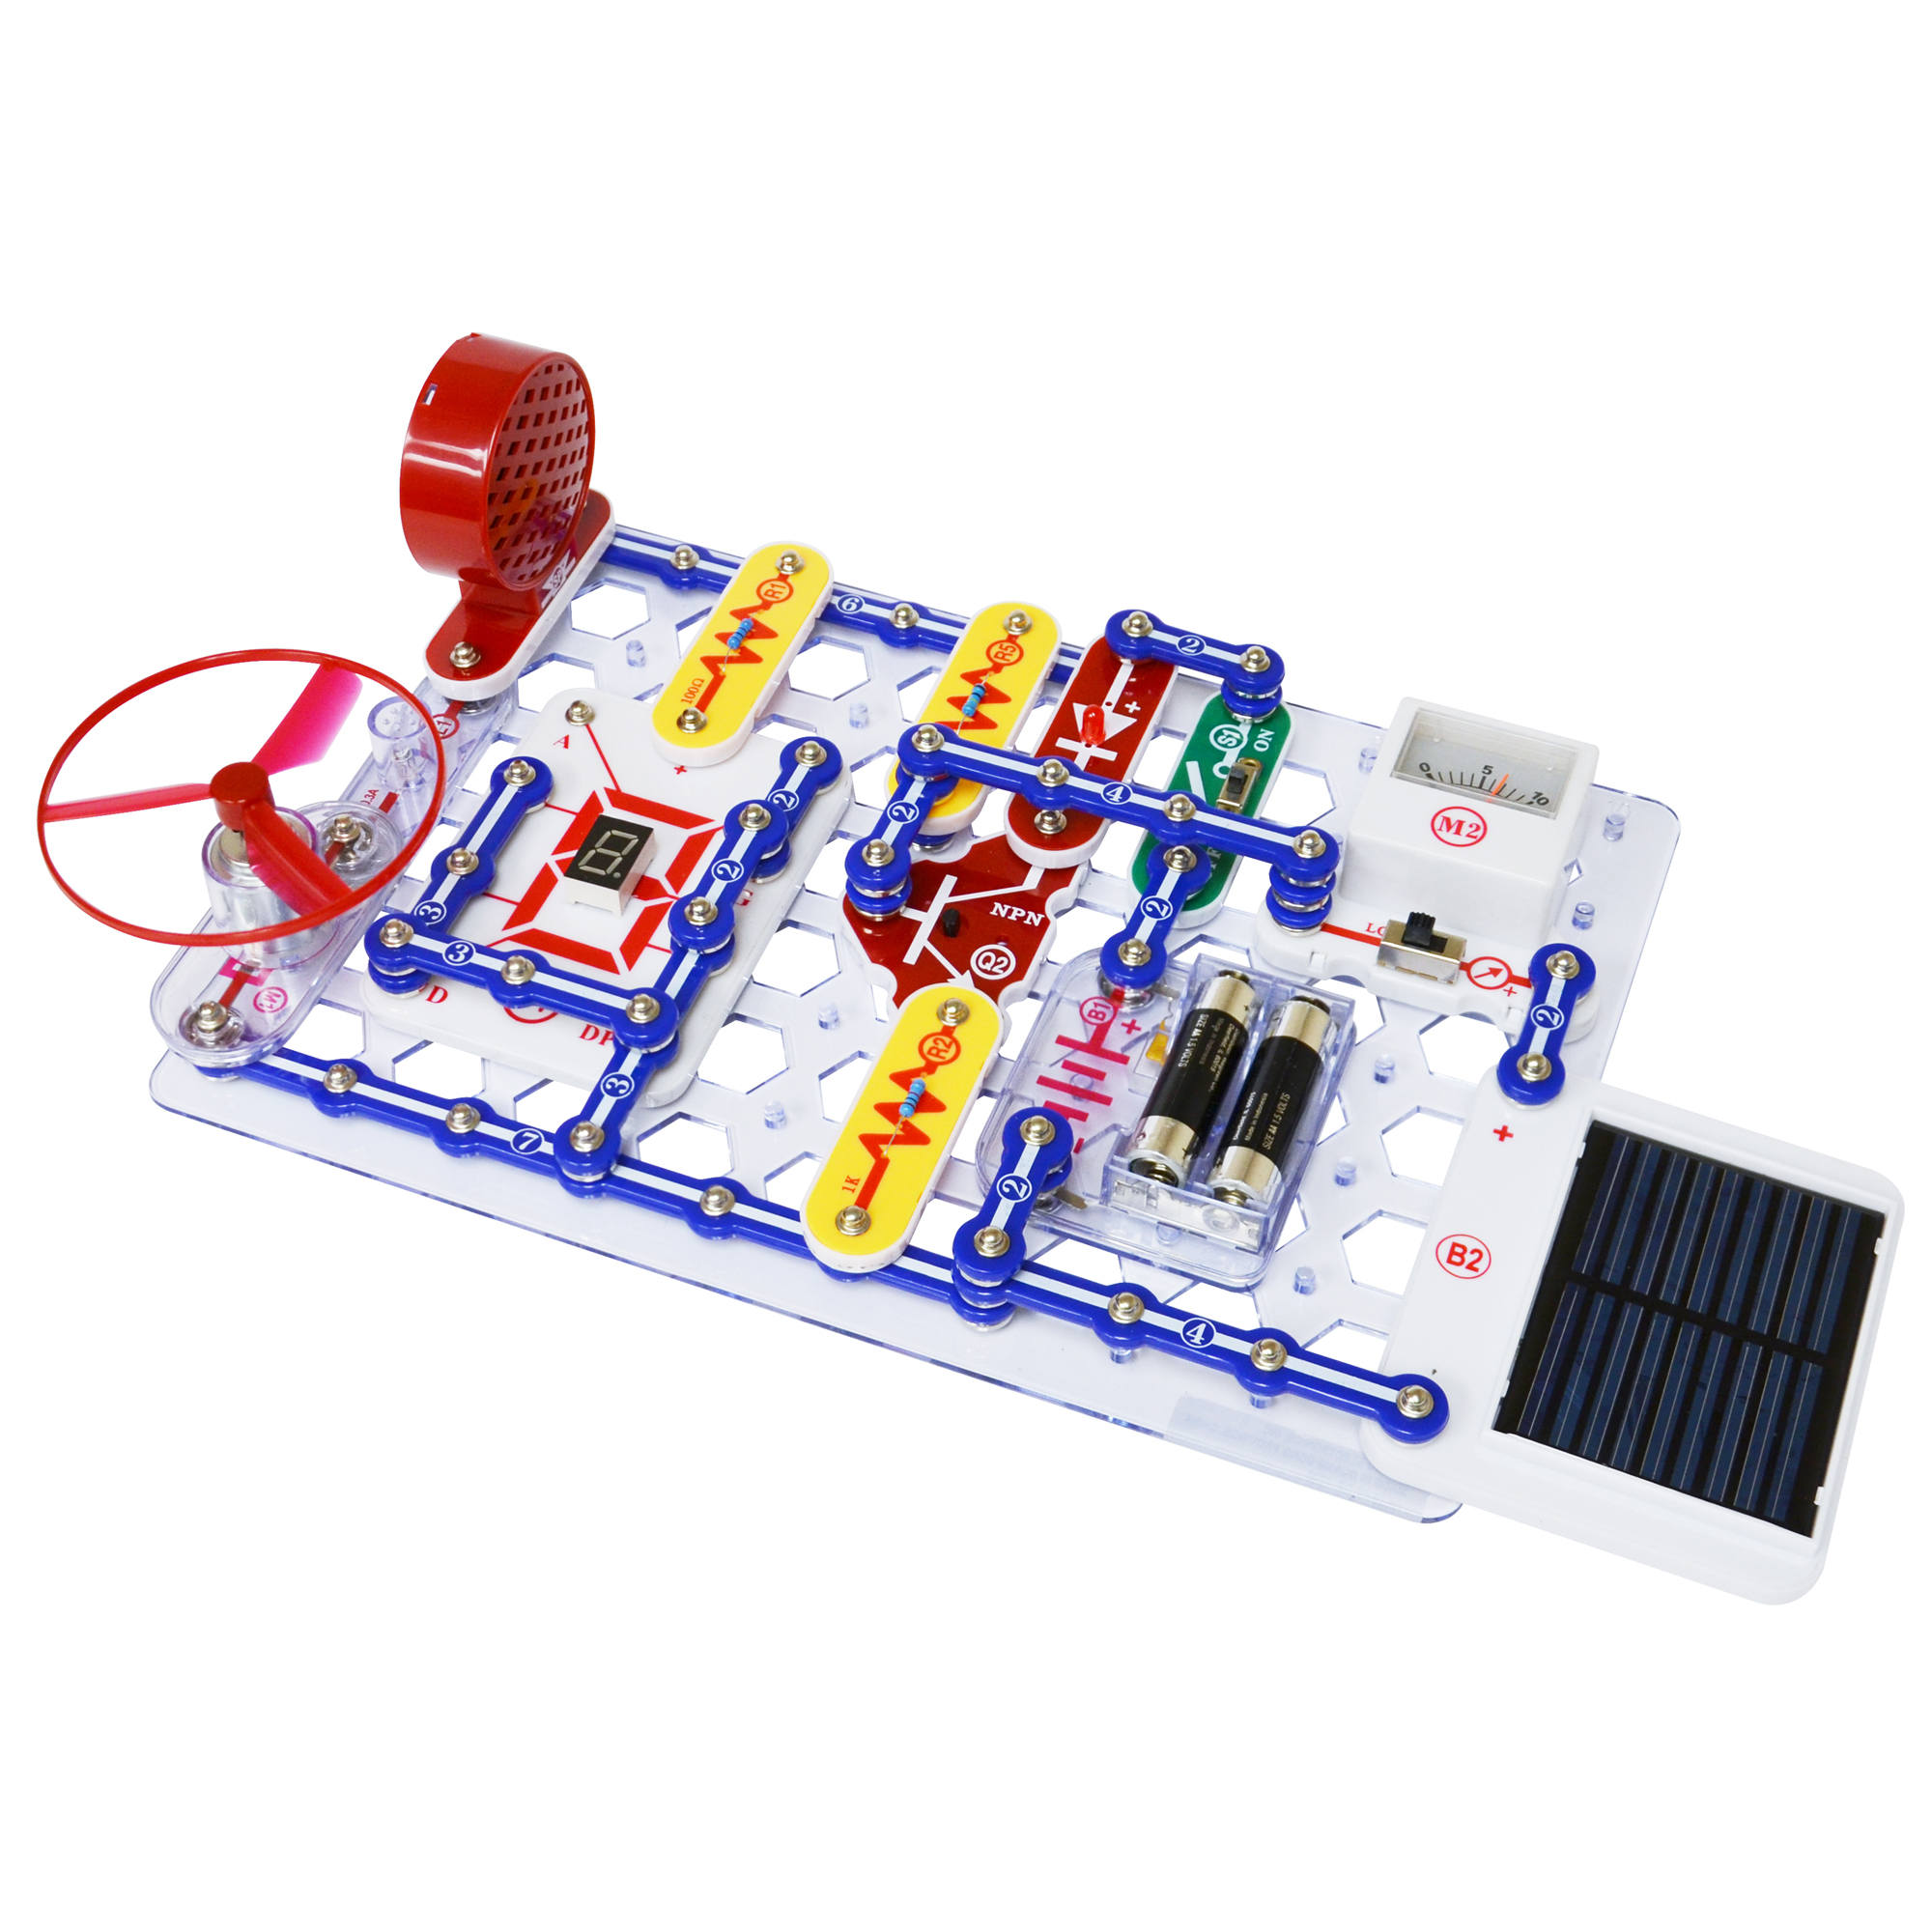 Snap Circuits Extreme 750 Experiments Elenco Electronics Electrical Project Kid Educational Previous Next